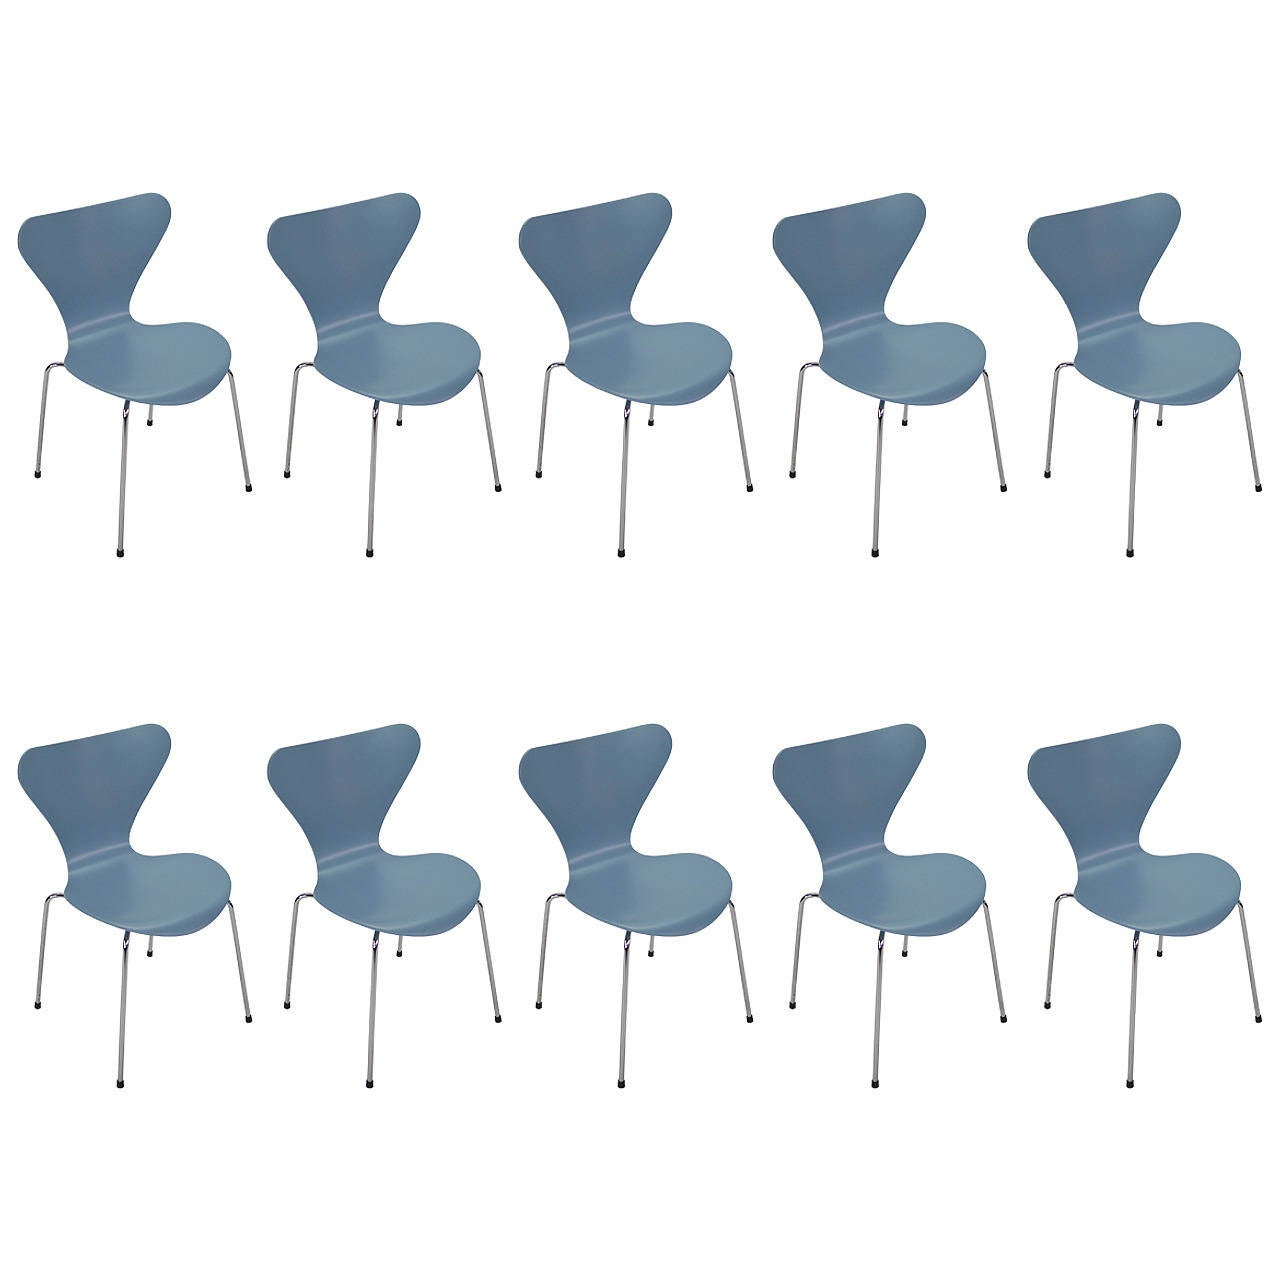 Jacobsen Series 7 Chair Ten Vintage Powder Blue Series 7 Chairs By Arne Jacobsen For Fritz